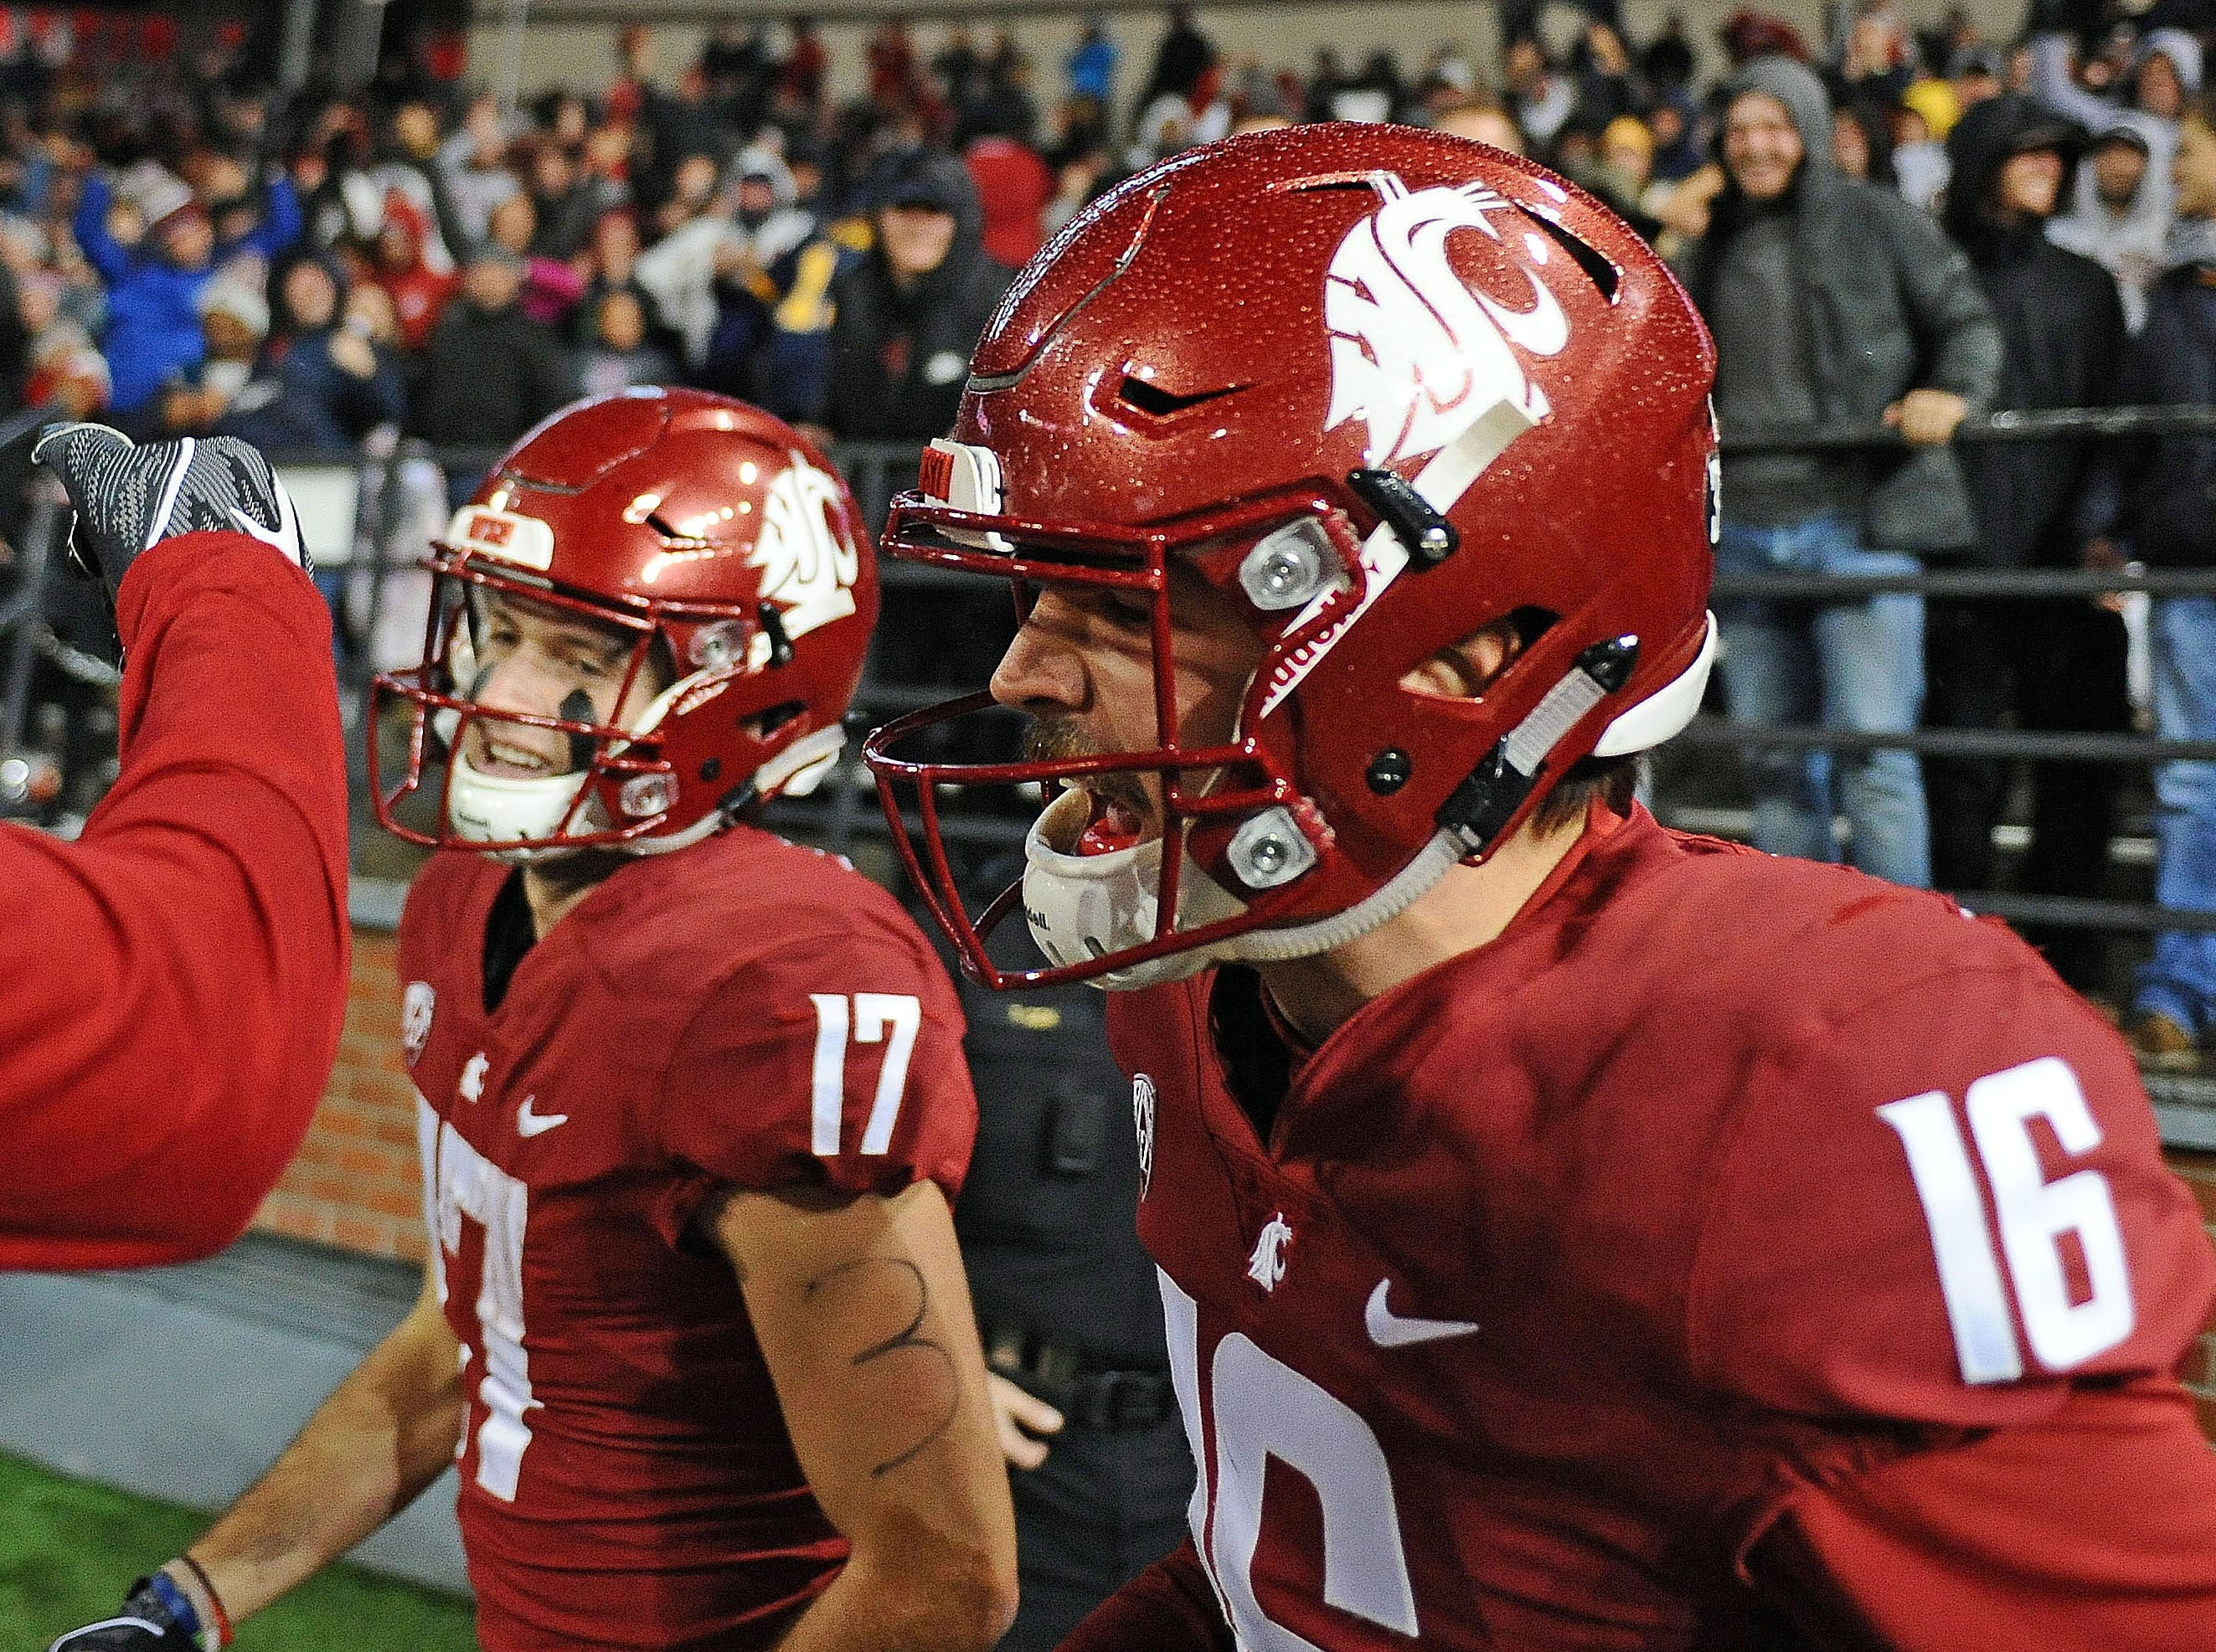 Washington State Cougars quarterback Gardner Minshew (16) celebrates a touchdown during a football game against the California Golden Bears in the second half at Martin Stadium.